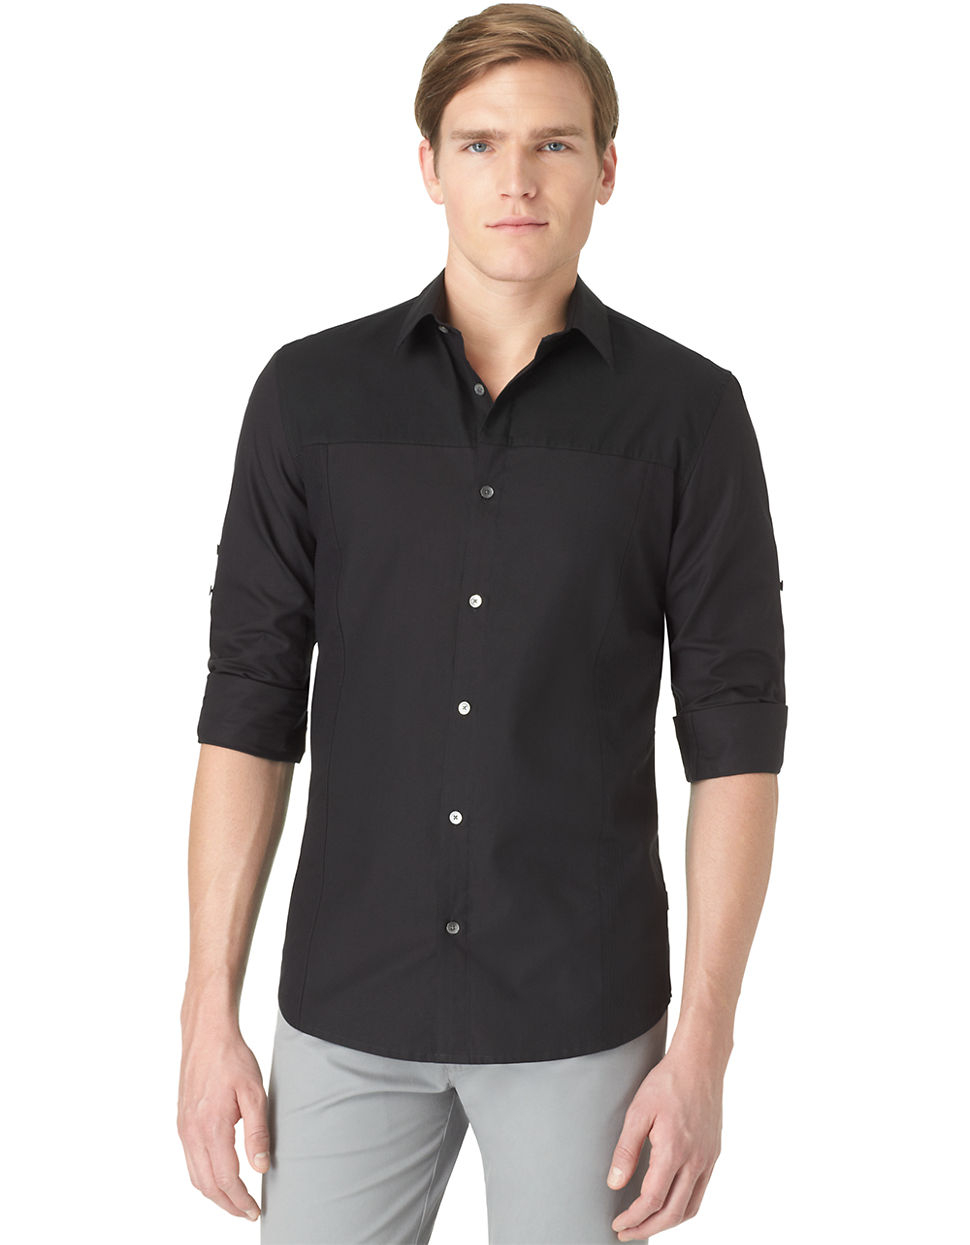 calvin klein slim fit mixed media dobby sport shirt in black for men. Black Bedroom Furniture Sets. Home Design Ideas